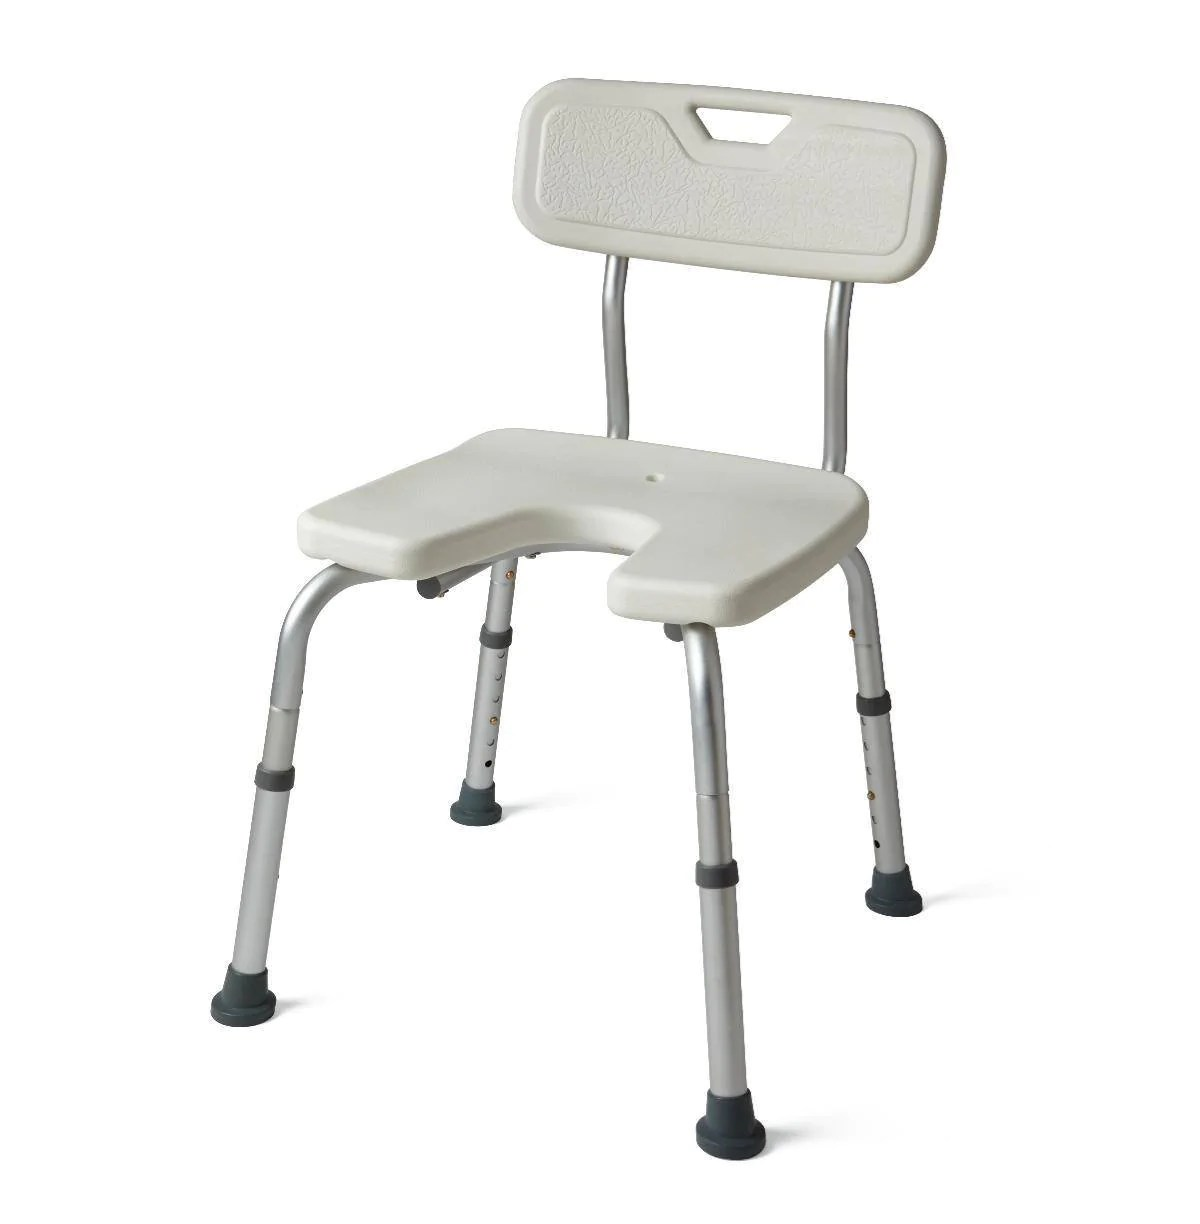 drive shower chair weight limit wooden captains bar stools guardian bath seat medability healthcare solutions